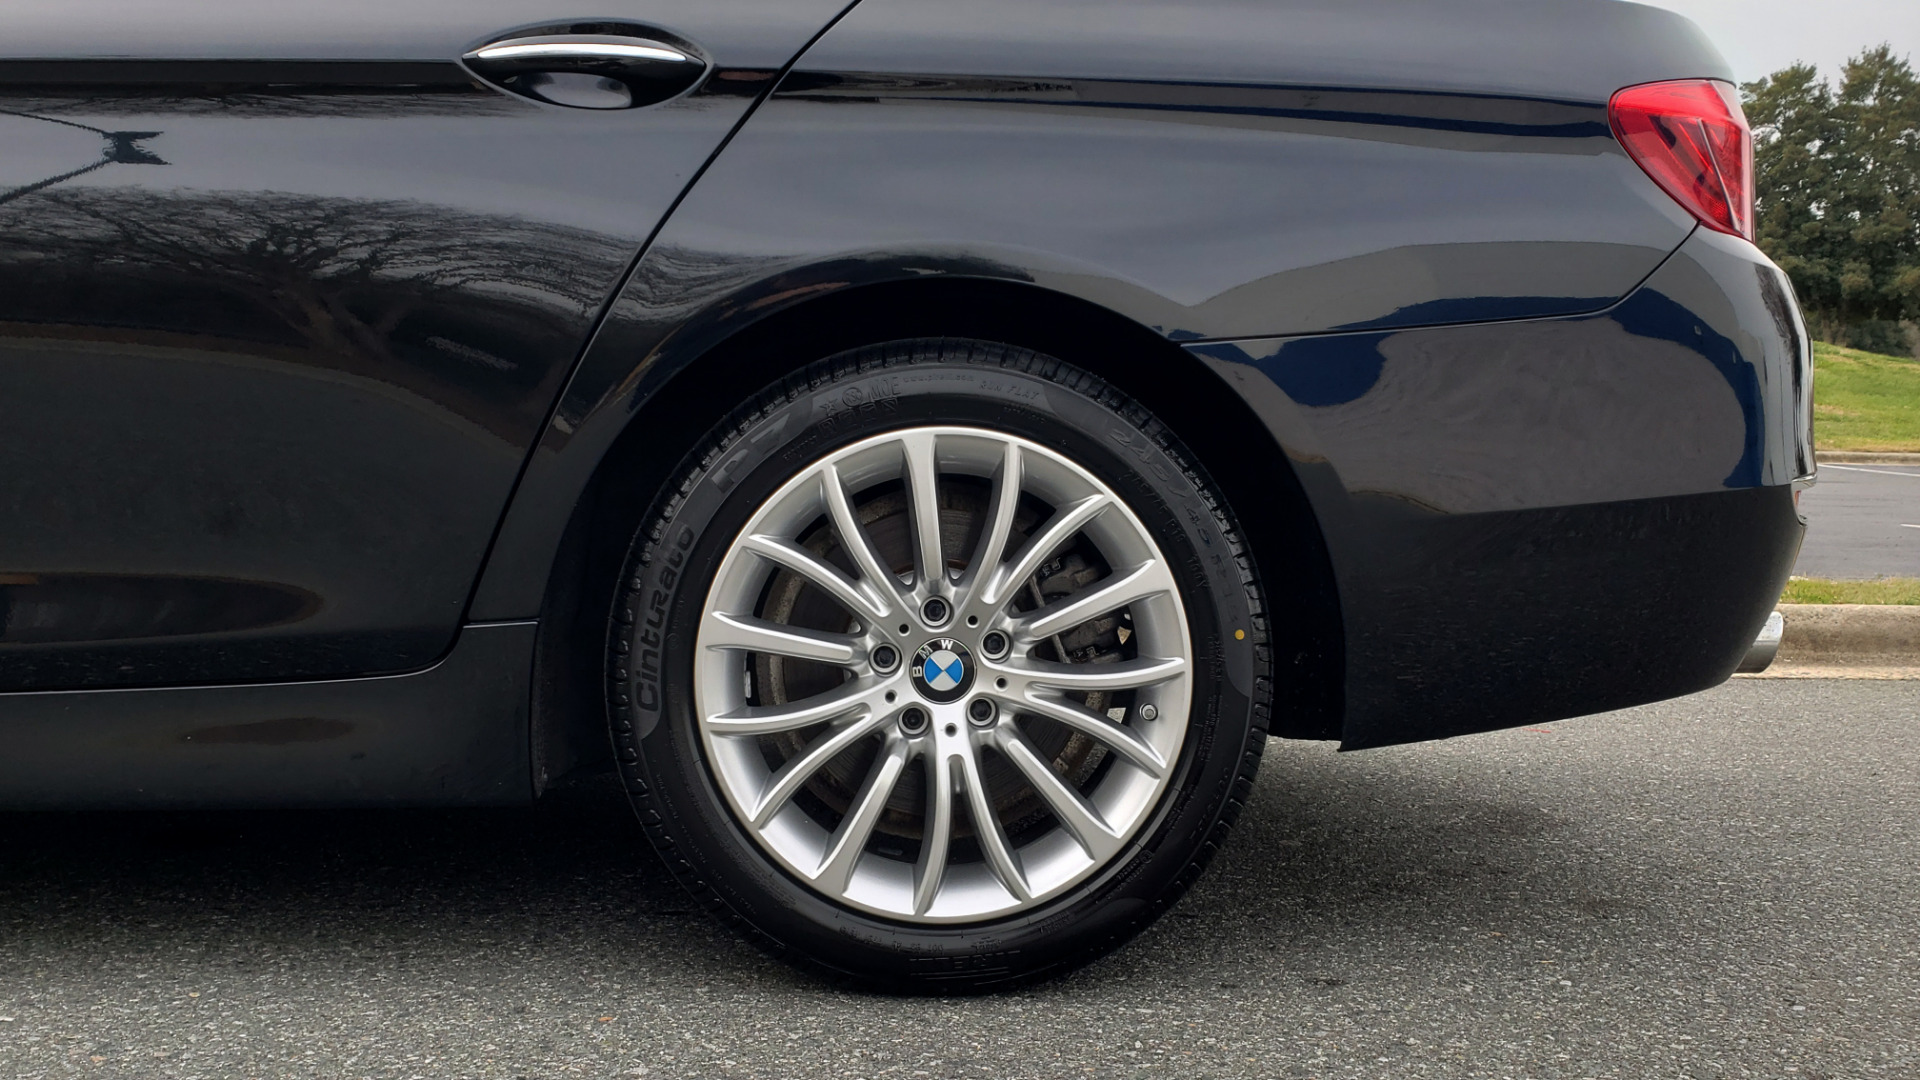 Used 2016 BMW 5 SERIES 528i XDRIVE / PREM PKG / DRVR ASST PLUS / LUXURY / COLD WTHR for sale Sold at Formula Imports in Charlotte NC 28227 7